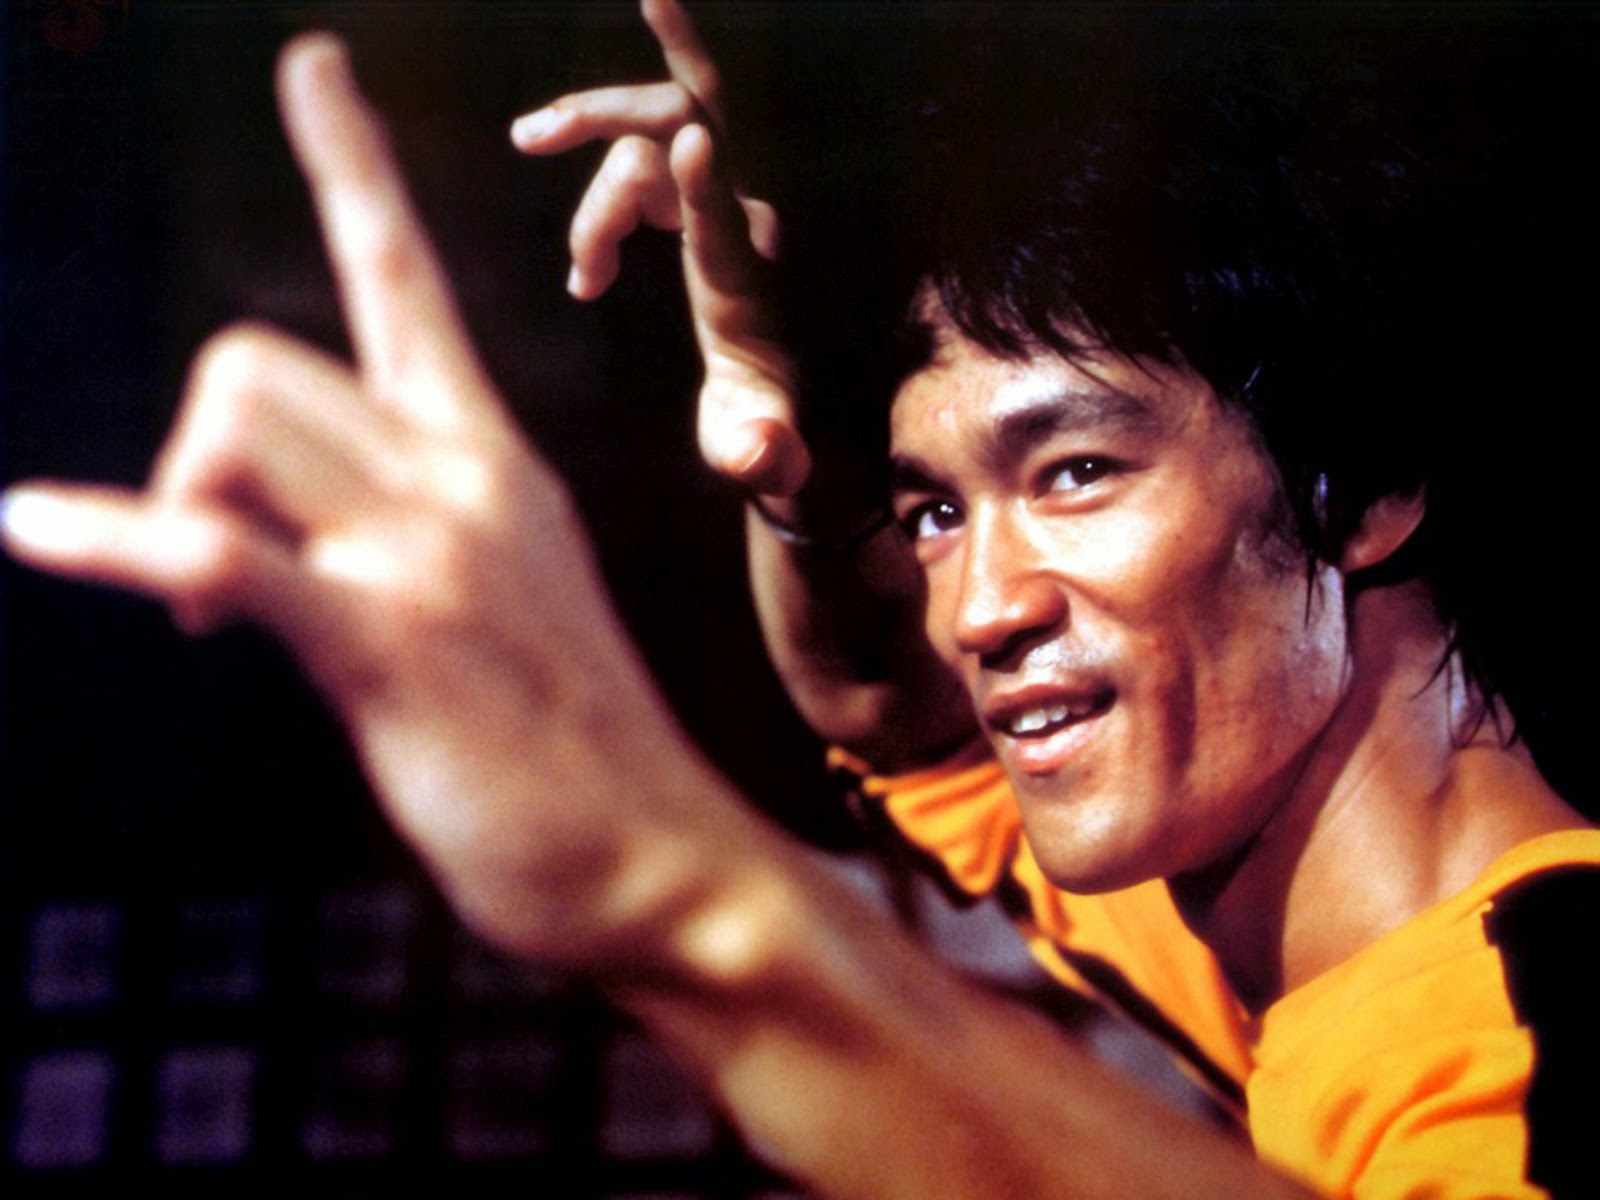 bruce lee celebrity death died too young from drugs